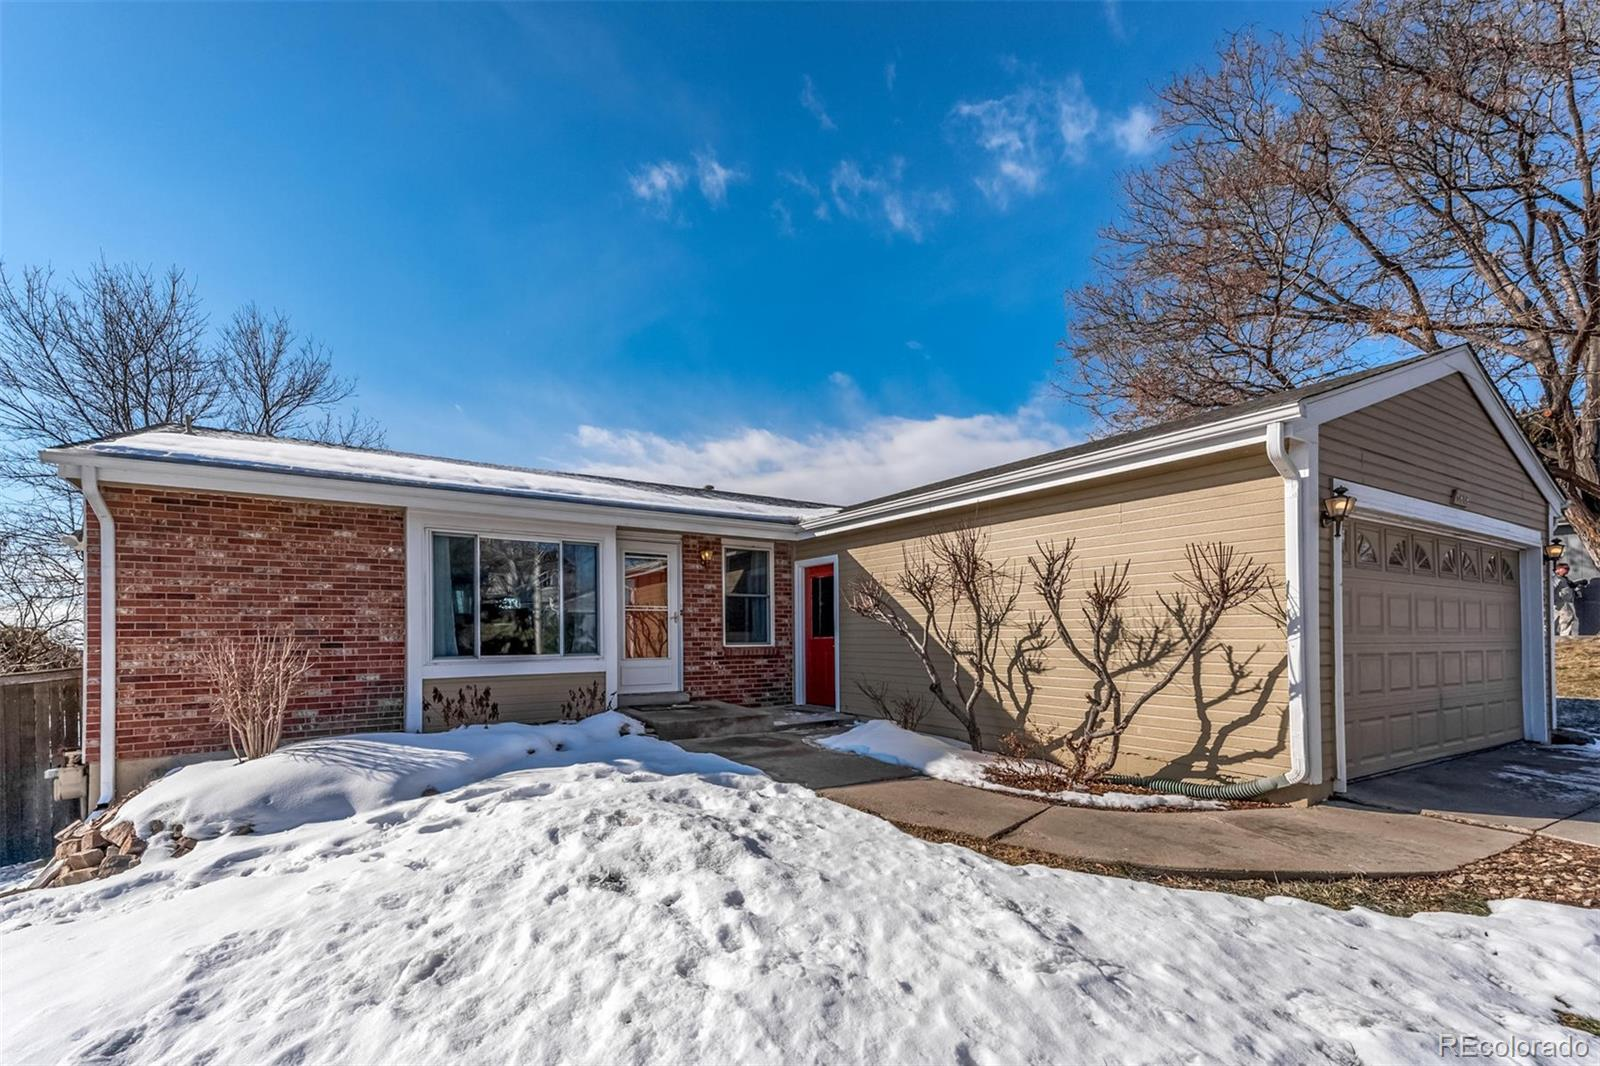 MLS# 5599126 - 2 - 5806 W 74th Place, Arvada, CO 80003